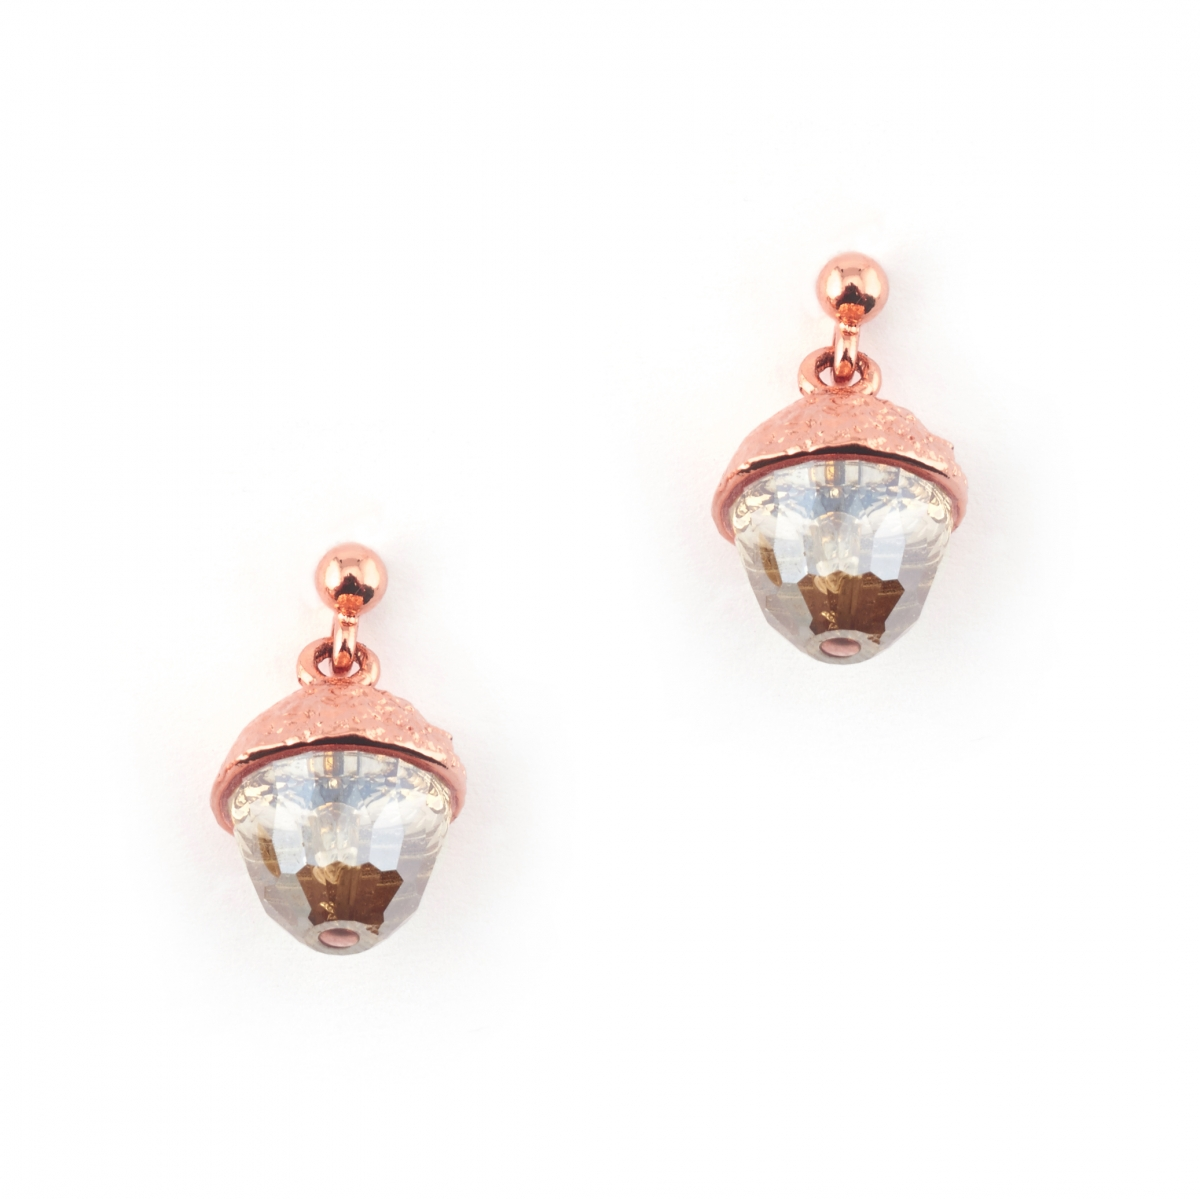 ROSE GOLD ACORN EARRINGS